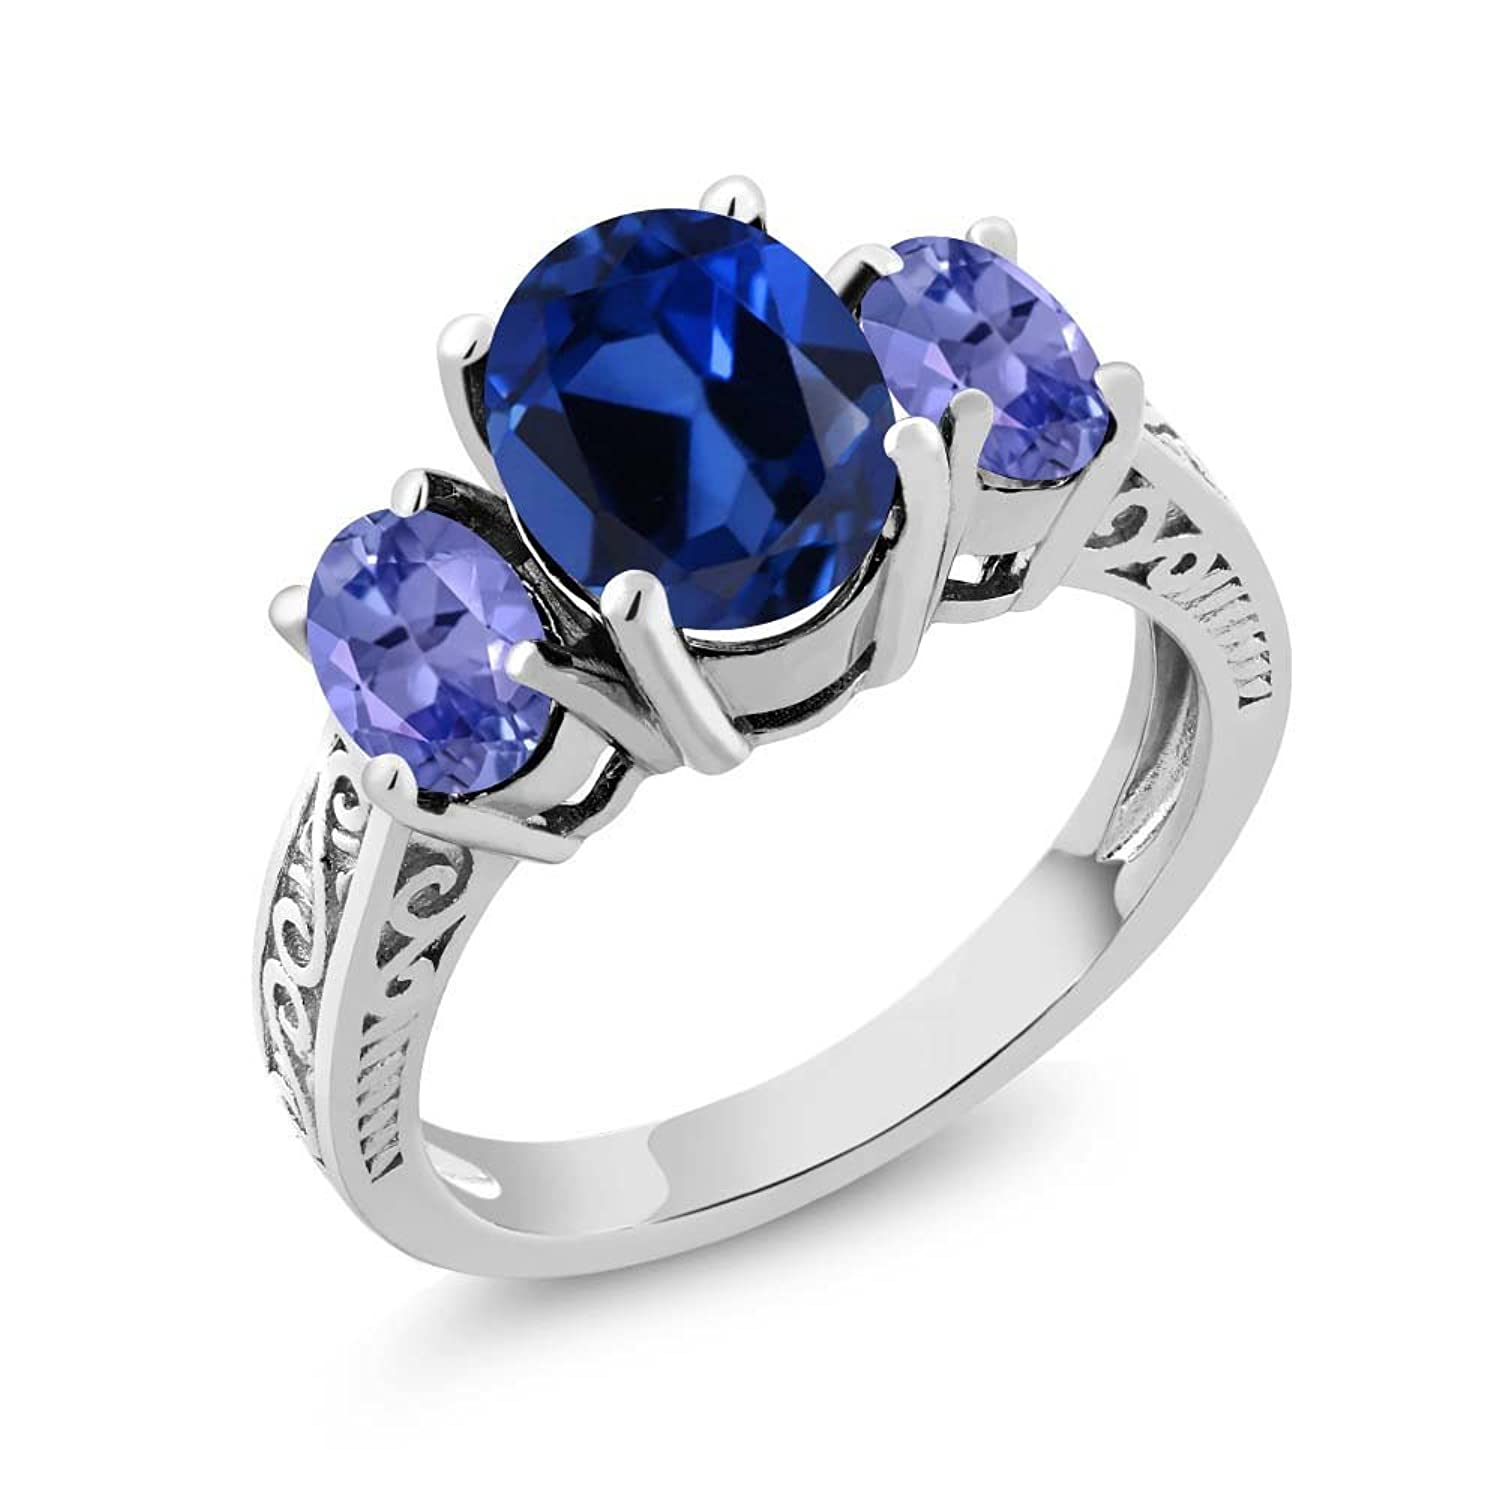 3.05 Ct Oval Blue Simulated Sapphire and Tanzanite 925 Sterling Silver 3-Stone Women's Ring (Available in size 5, 6, 7, 8, 9)